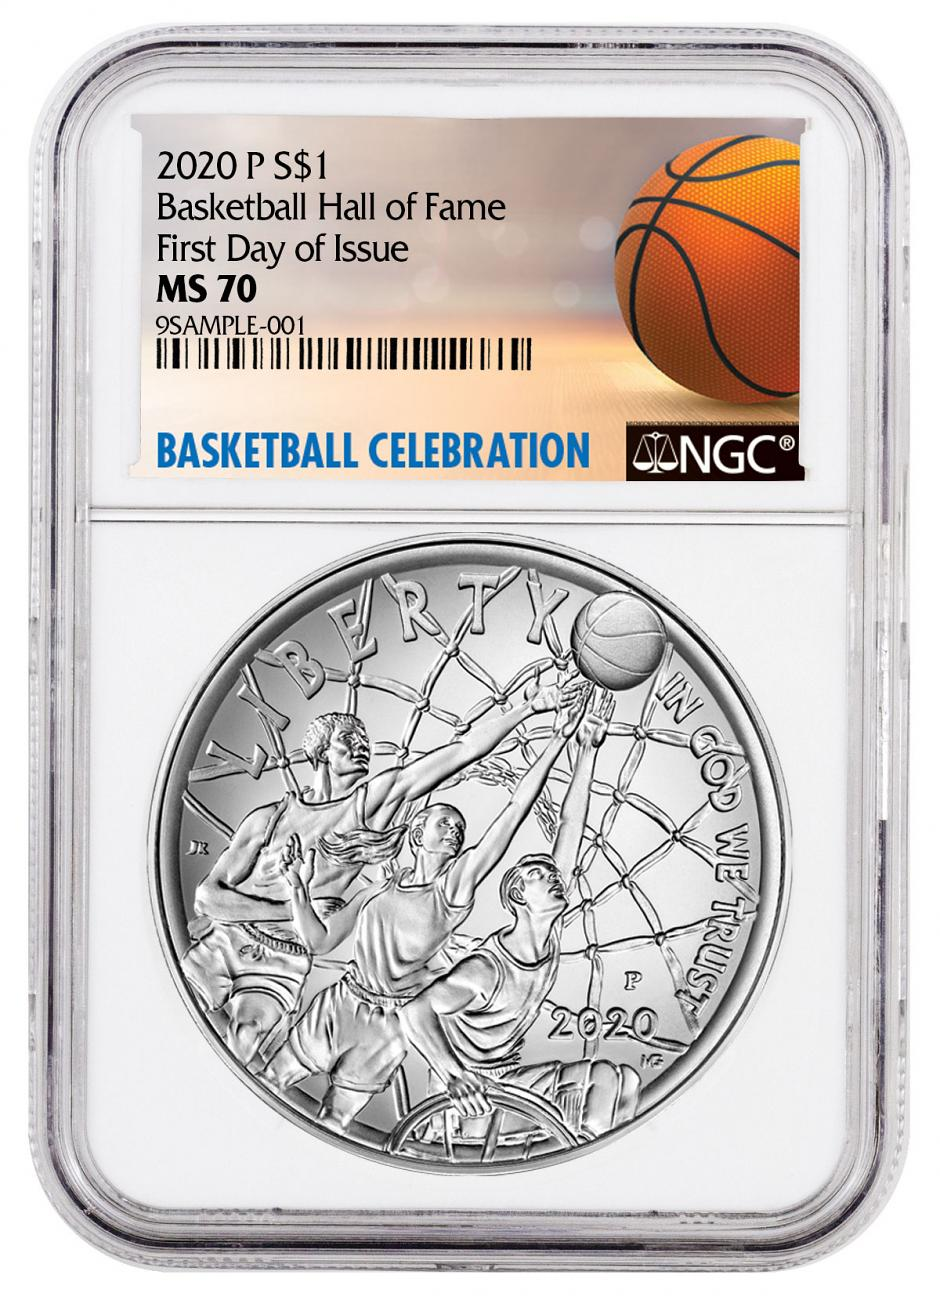 2020-P $1 Basketball Hall of Fame Silver Dollar Coin NGC MS70 FDI